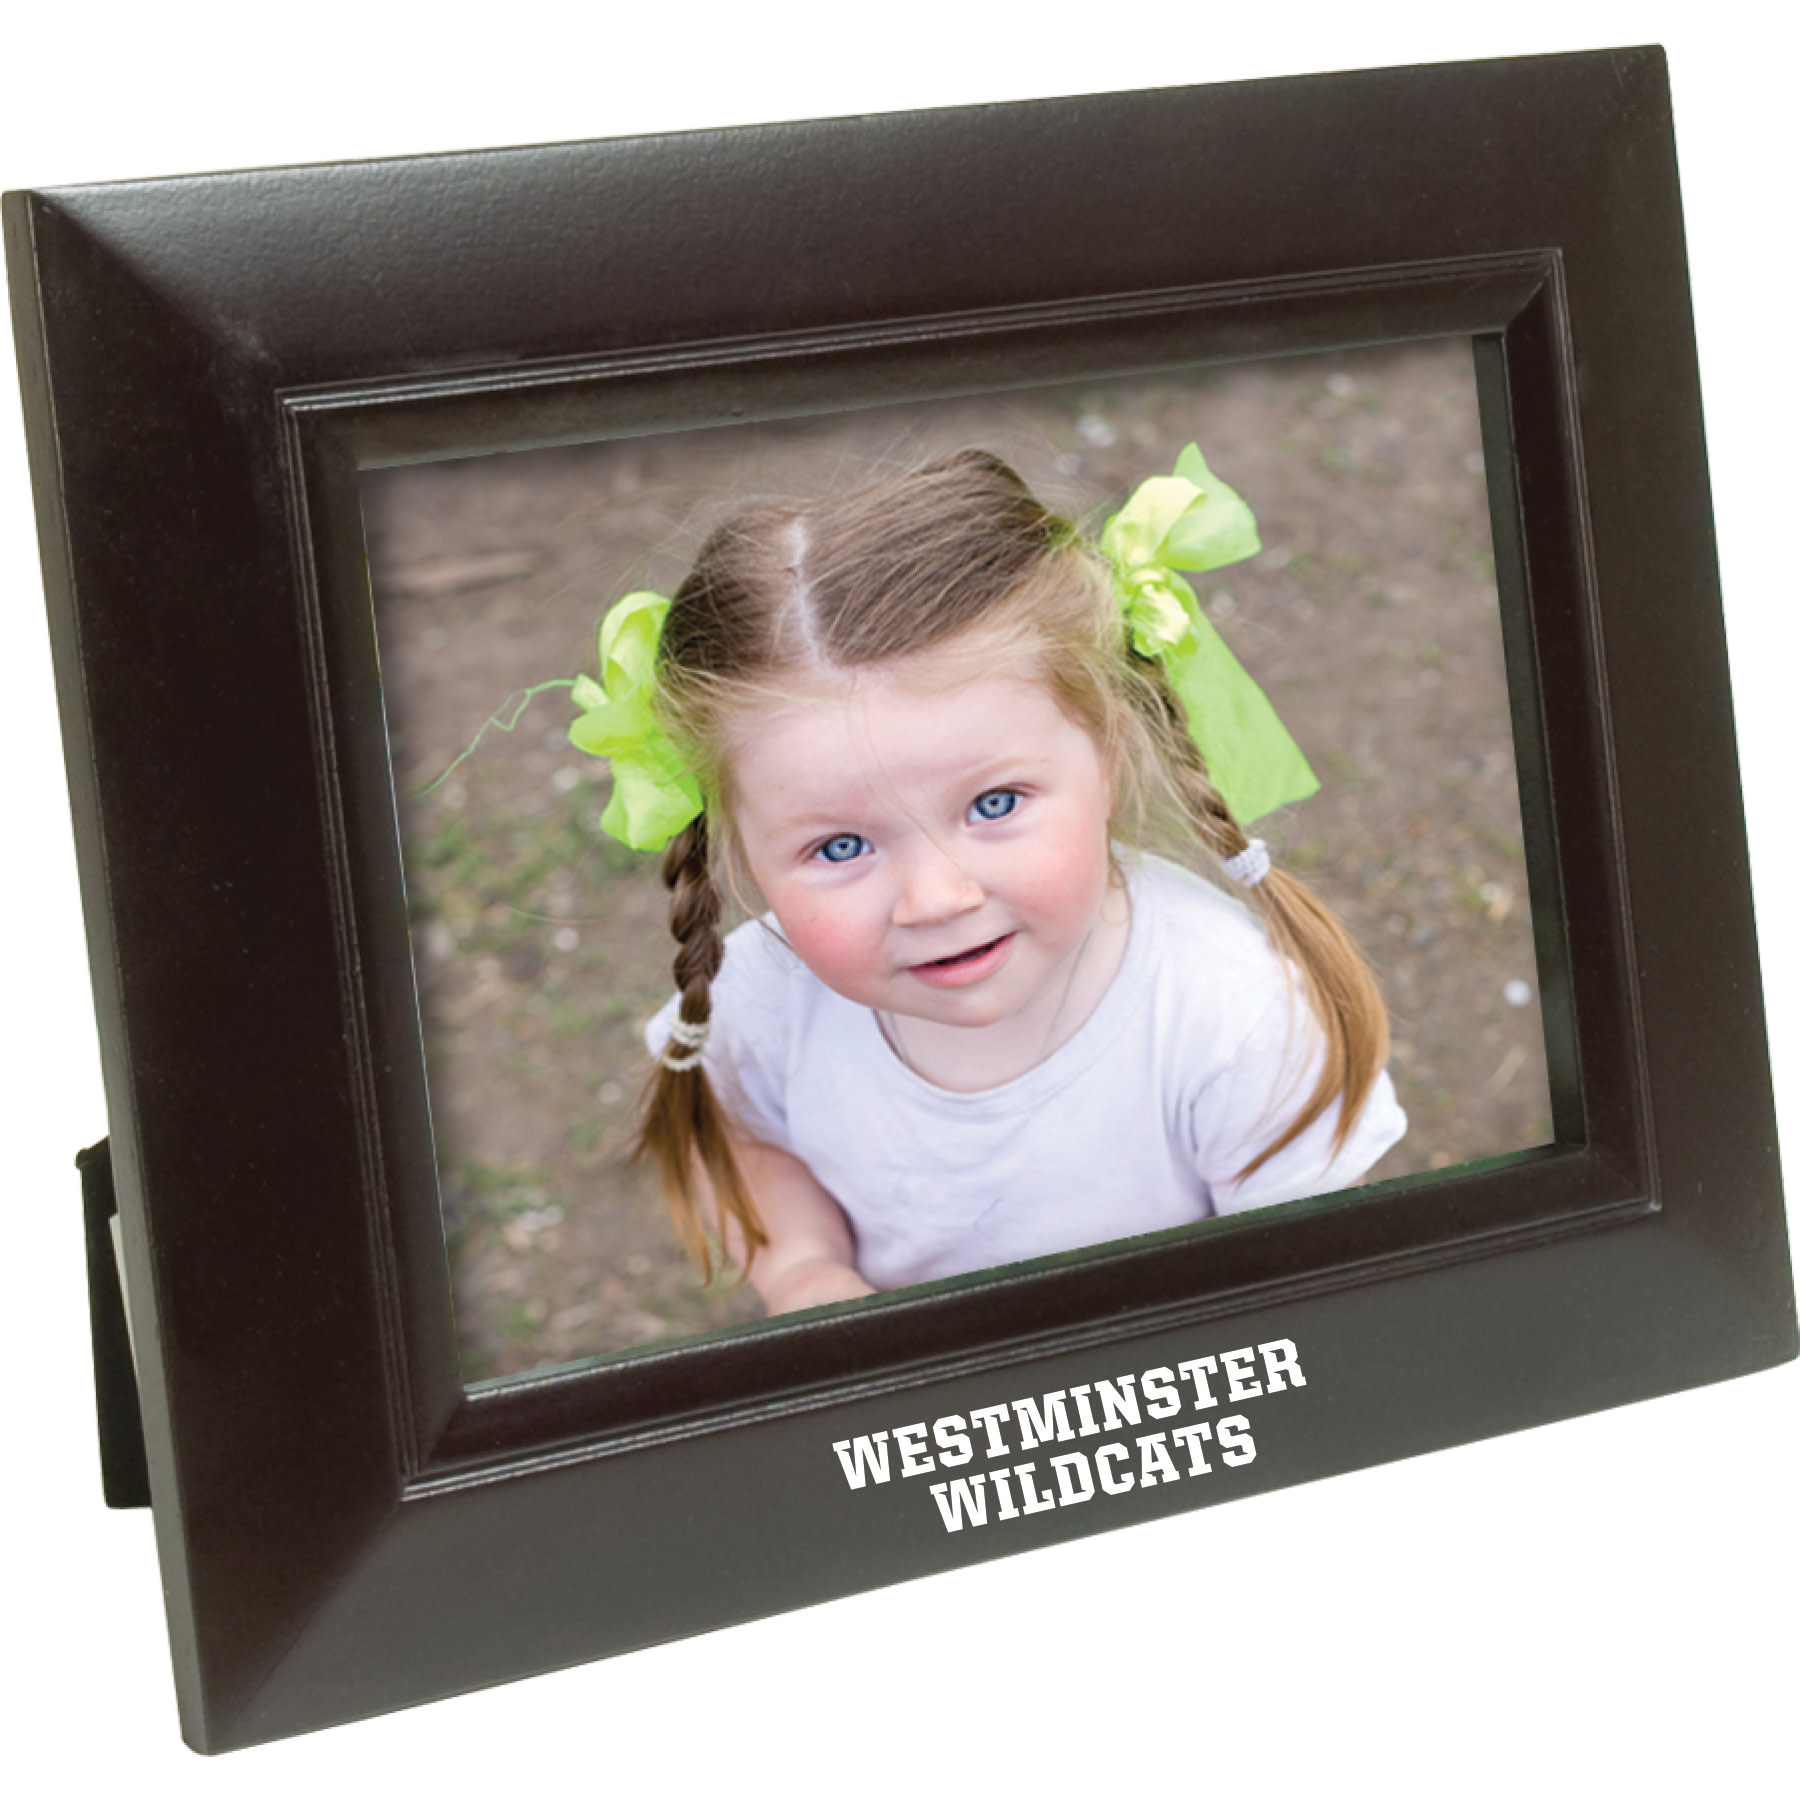 Frame: Wood Westminster Wildcats Black